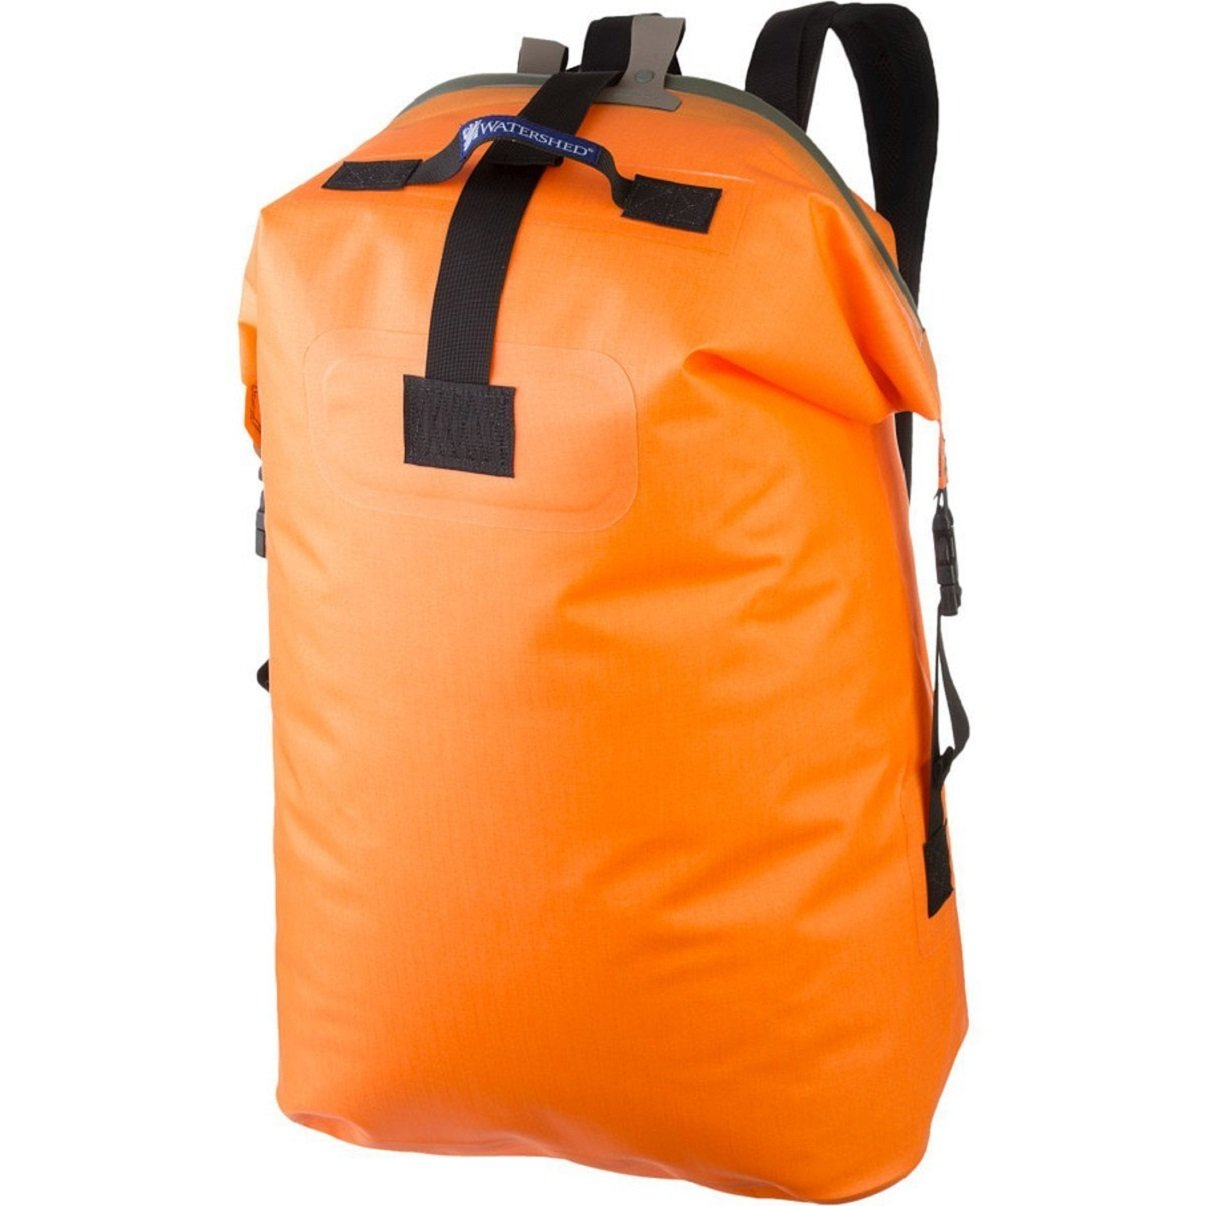 Watershed Westwater Bagpack, Orange